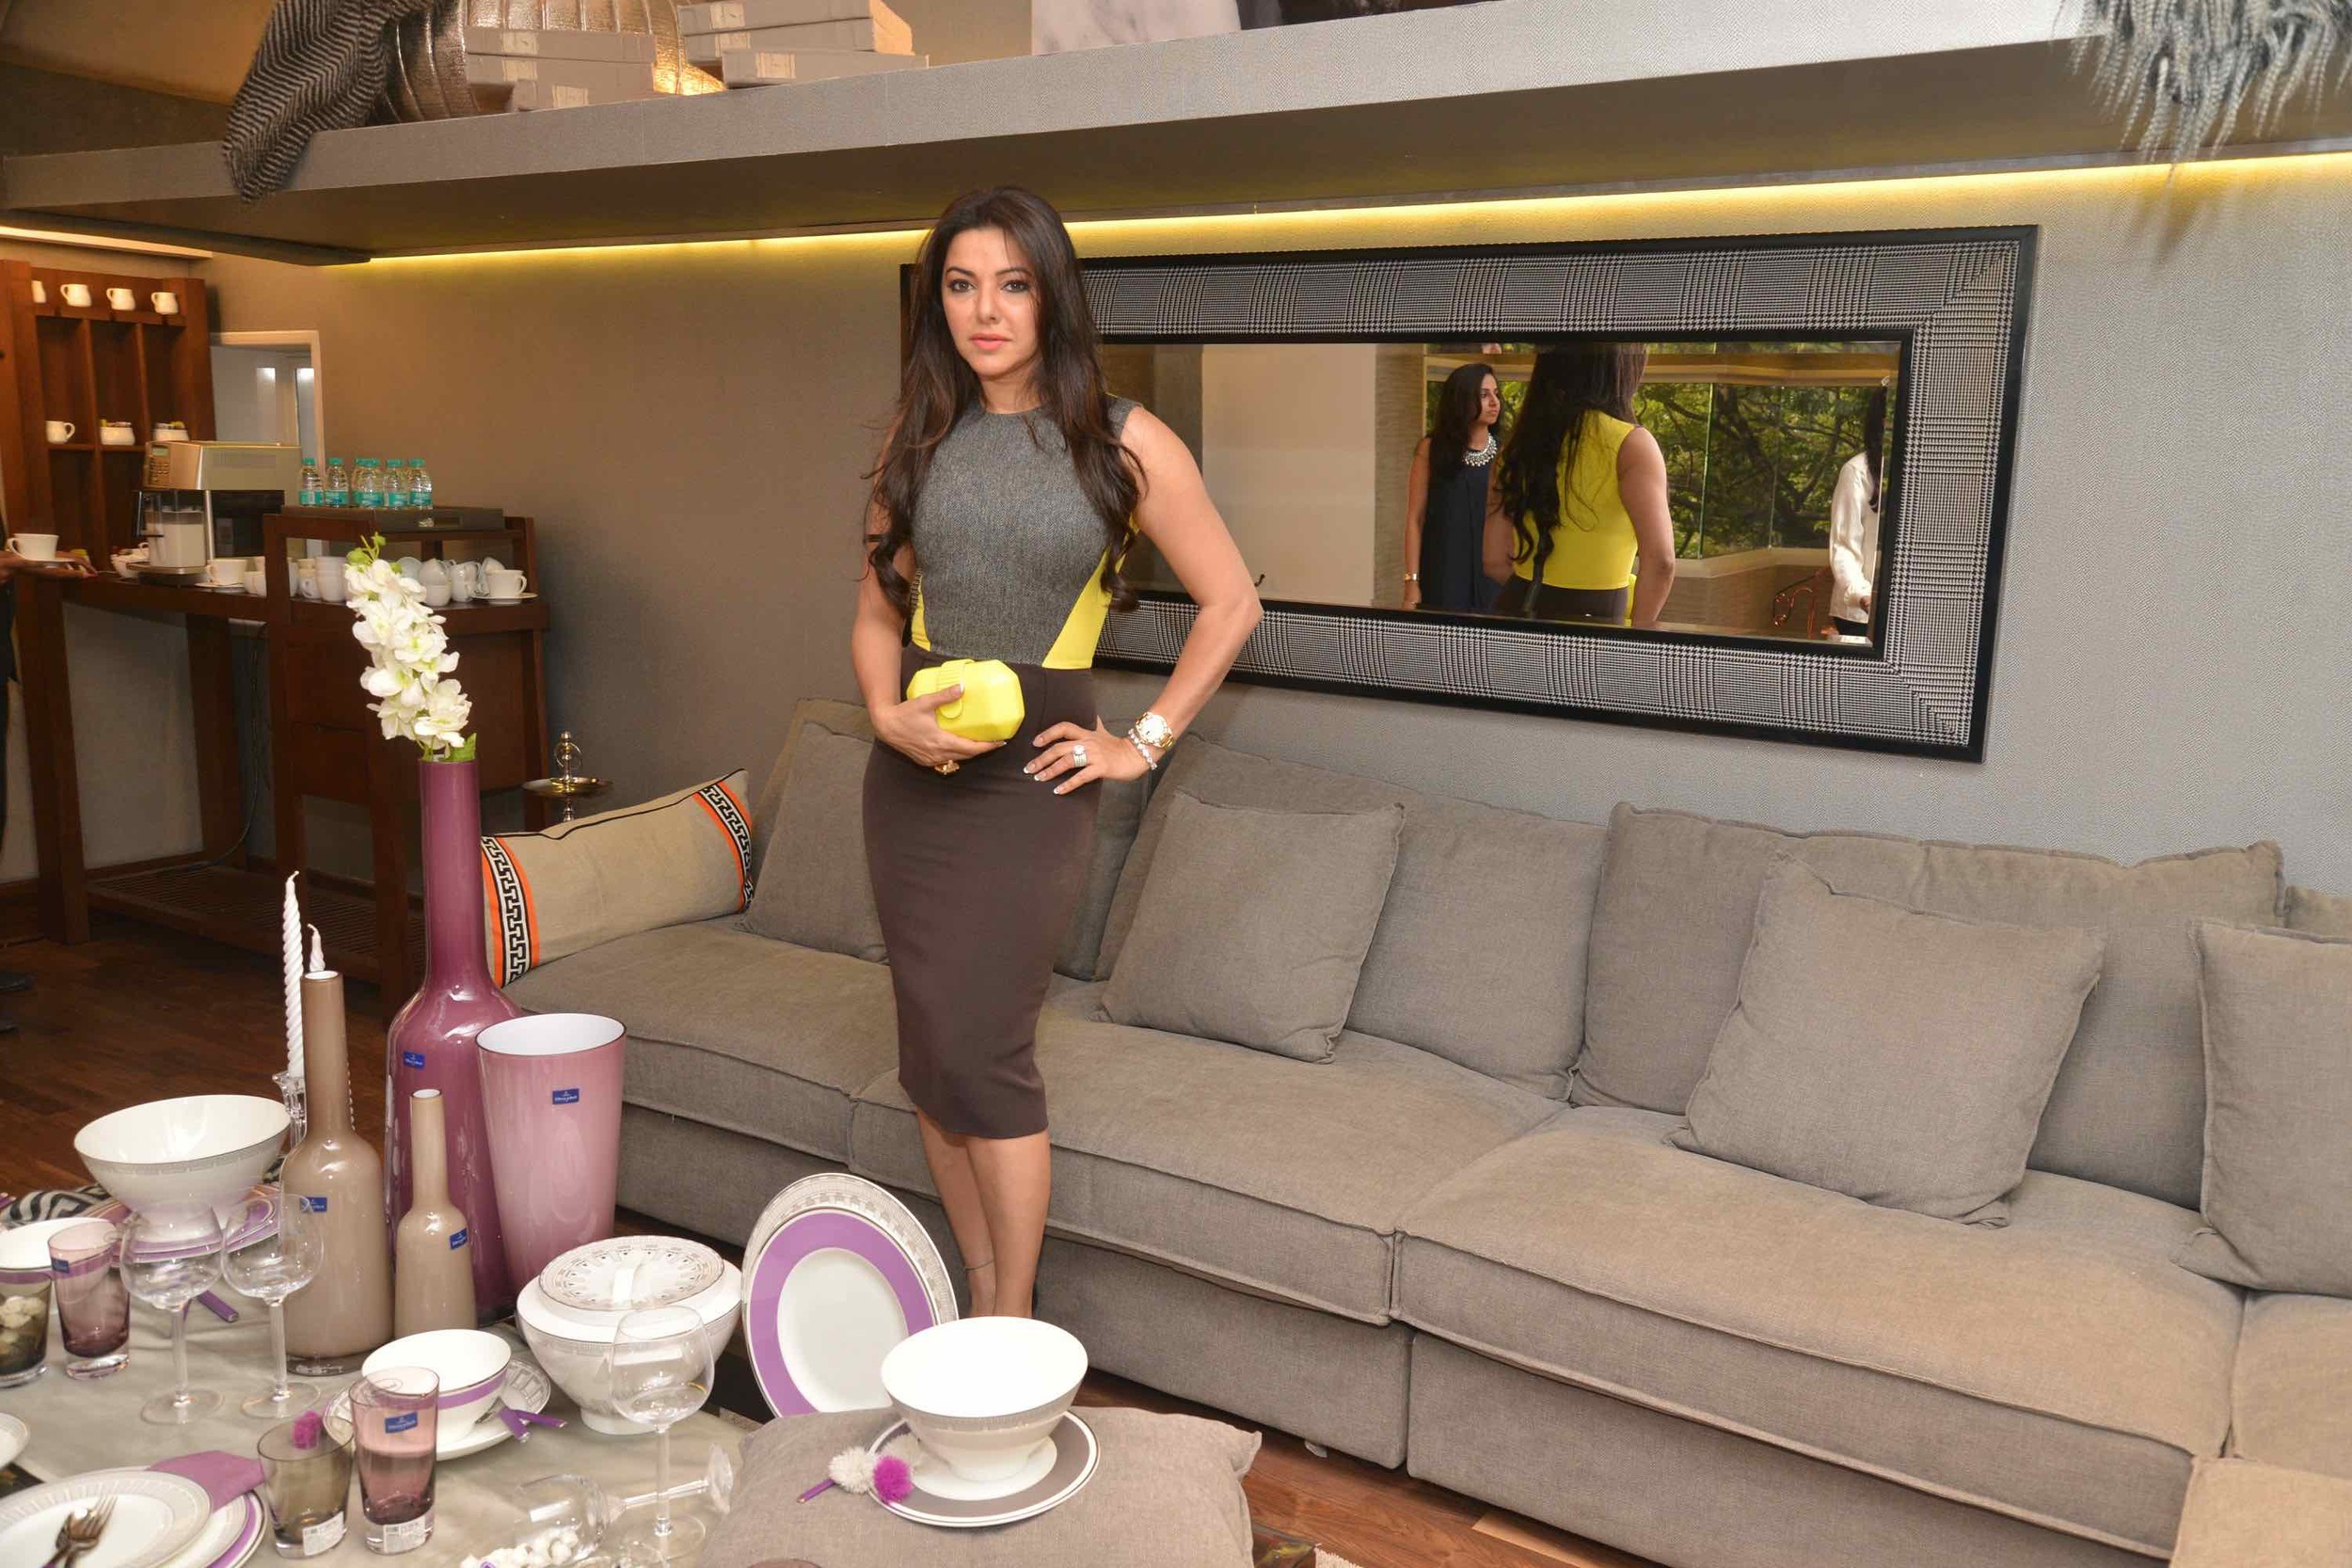 Kahkashan Patel At The Villeroy & Boch High Tea